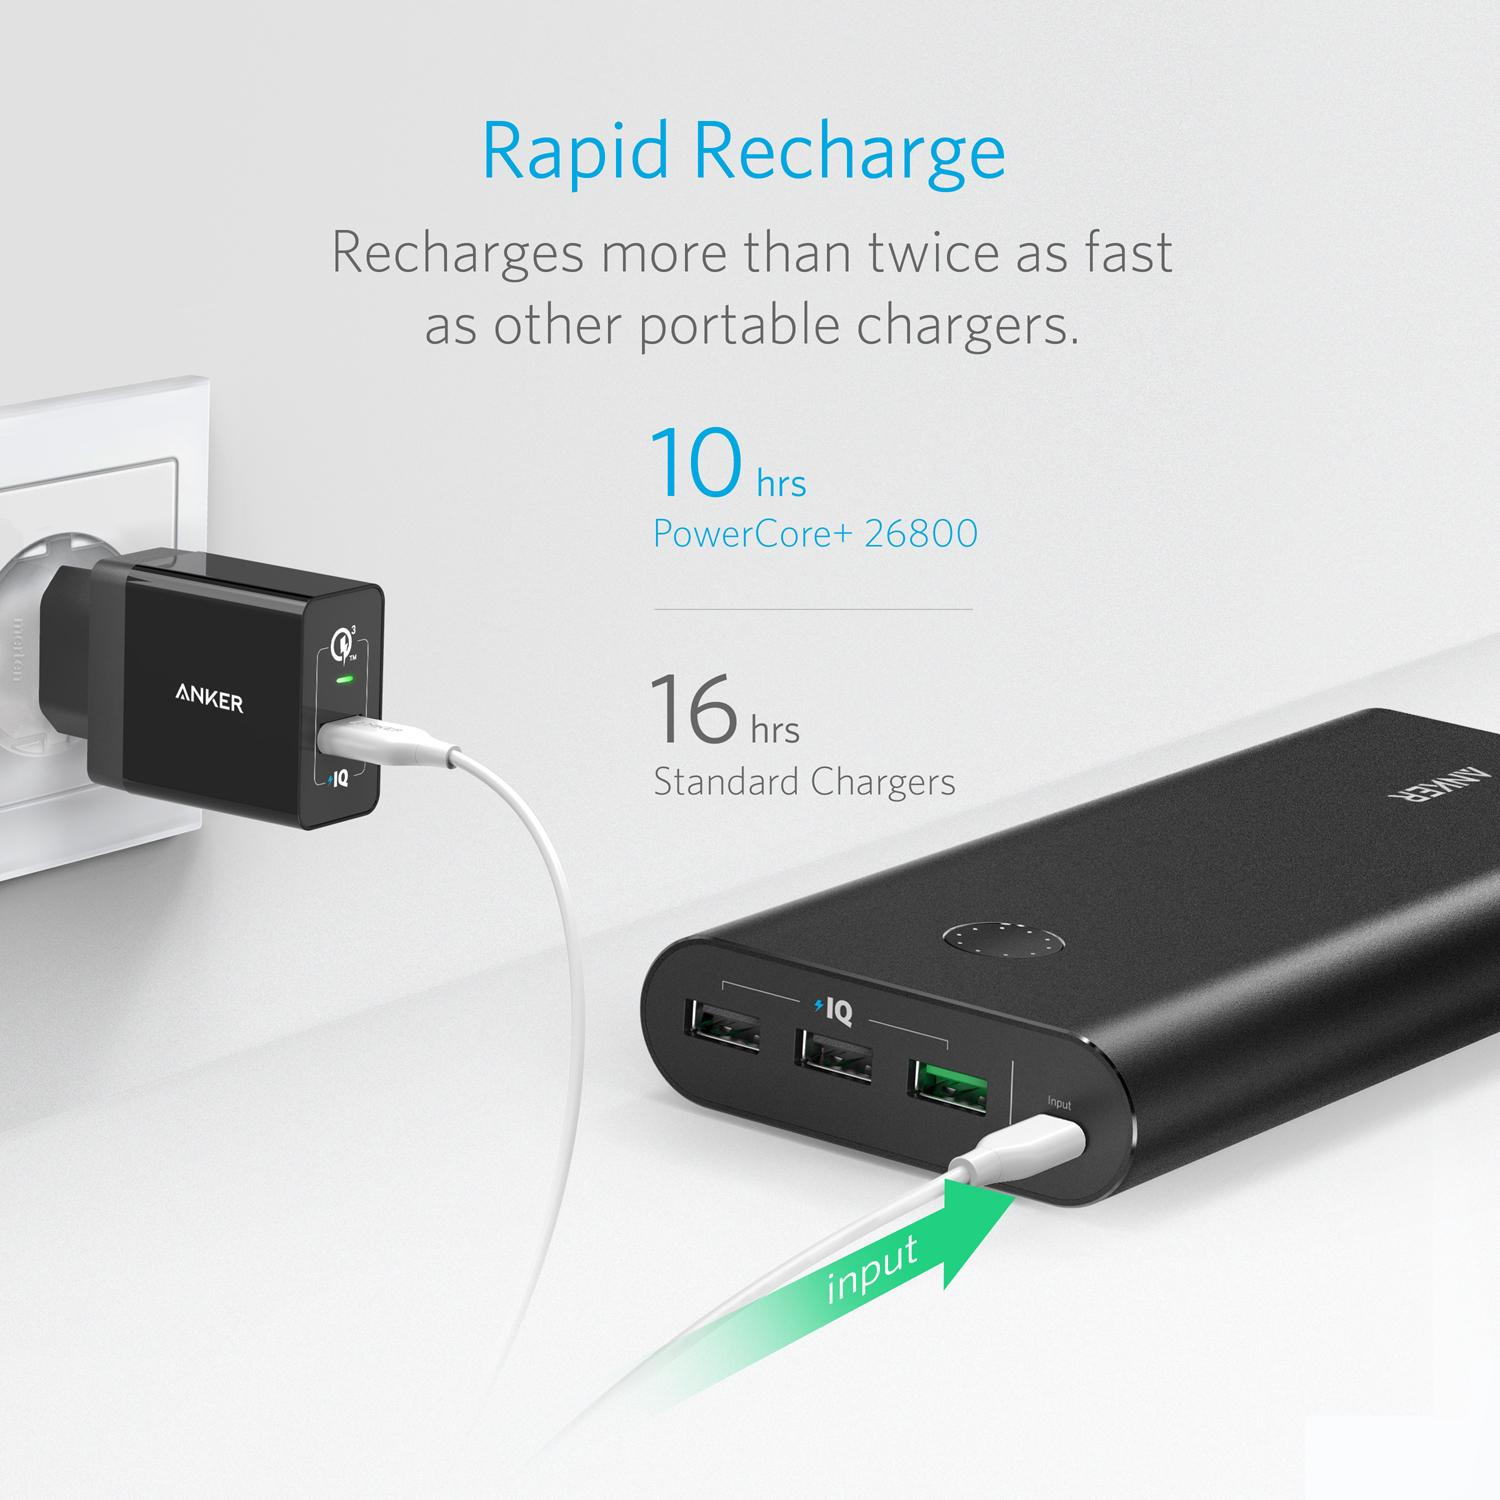 Anker PowerCore+ 26800mAh & Powerport+1 Quick Charge 3.0 Charger (Euro Plug)